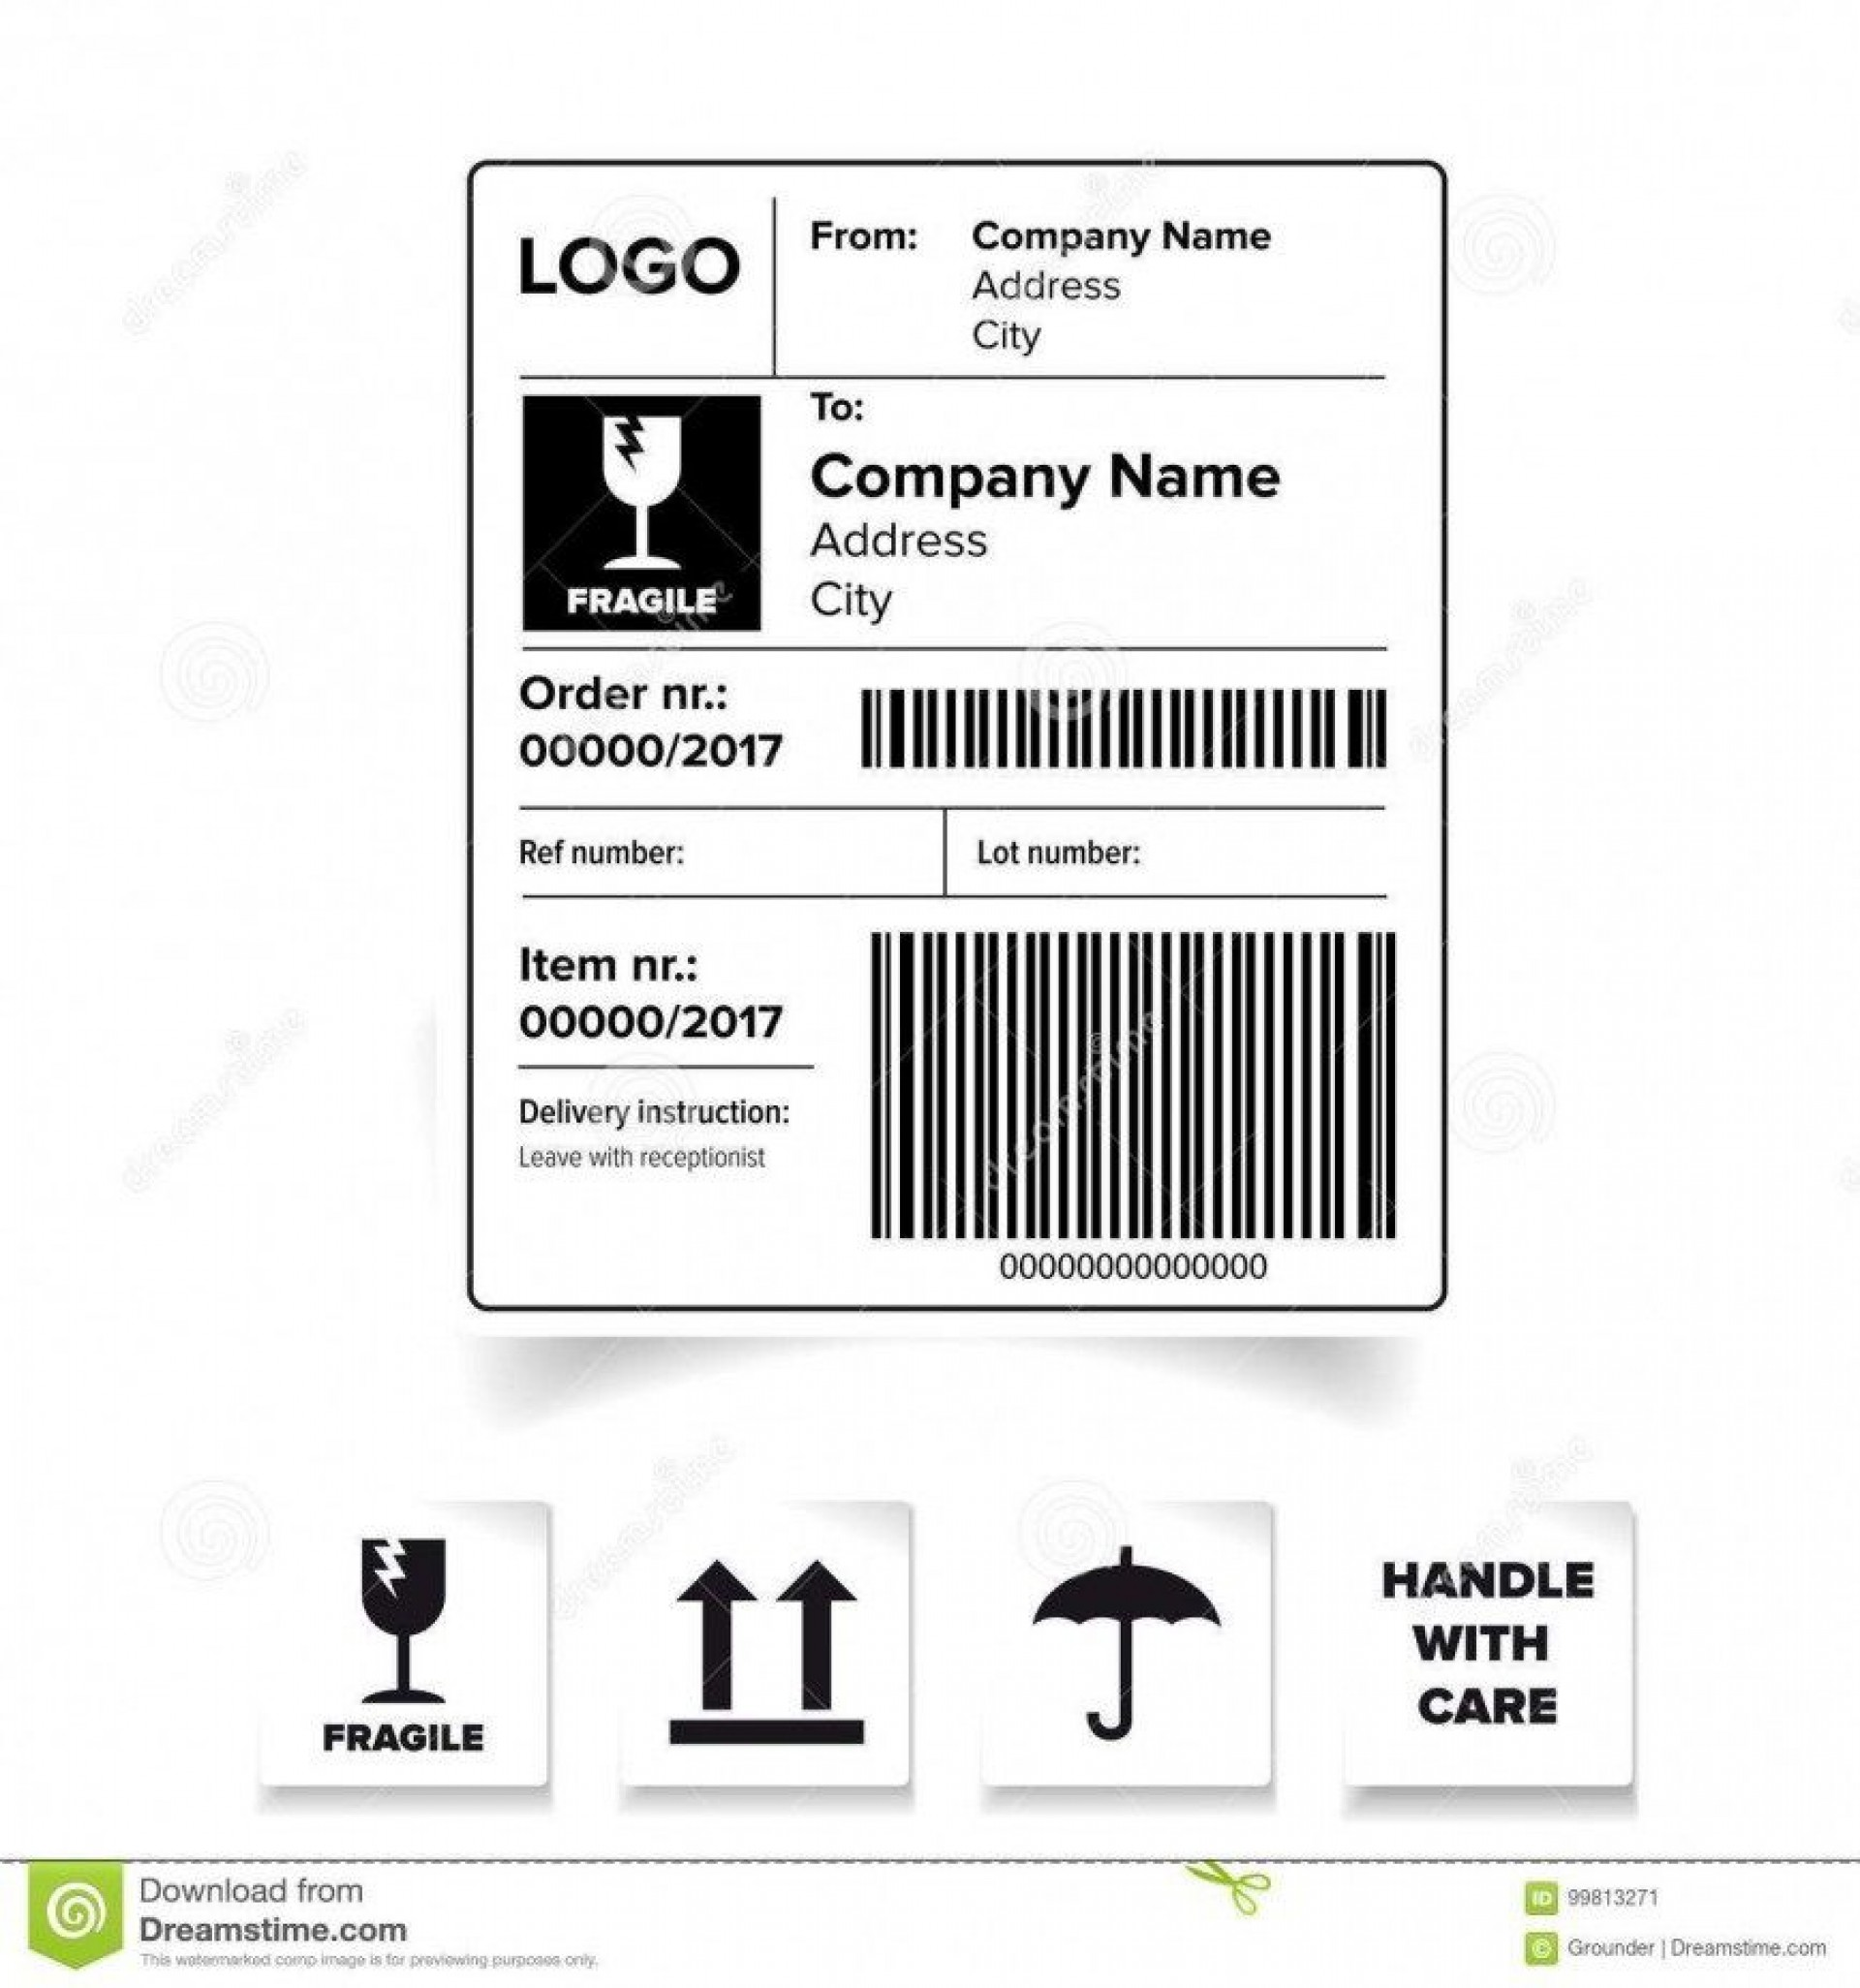 008 Awful Free Shipping Label Template Printable Image  Online1920